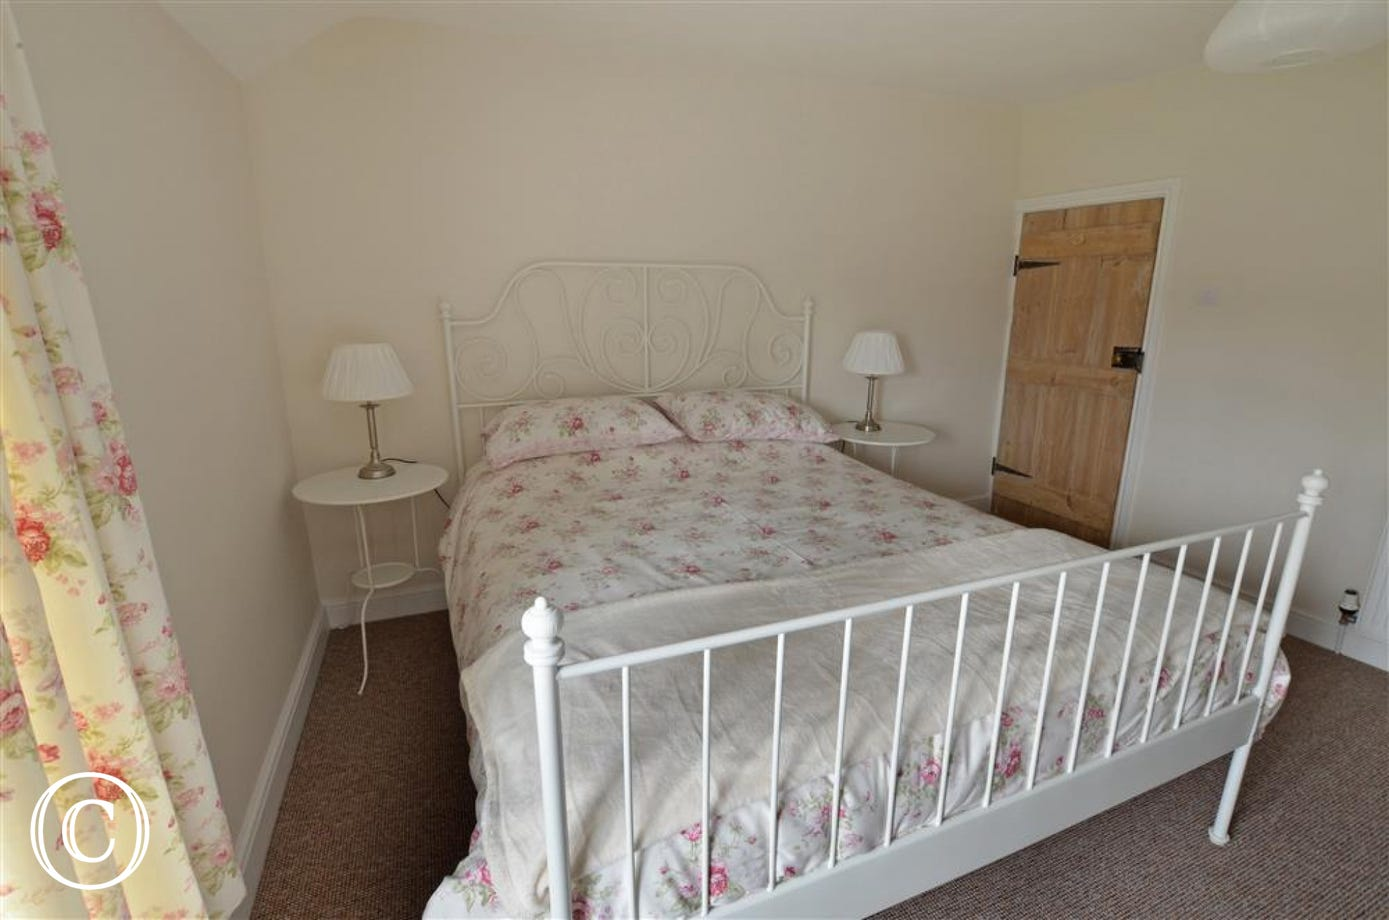 A comfortable double bed with a pretty ironwork bed frame.